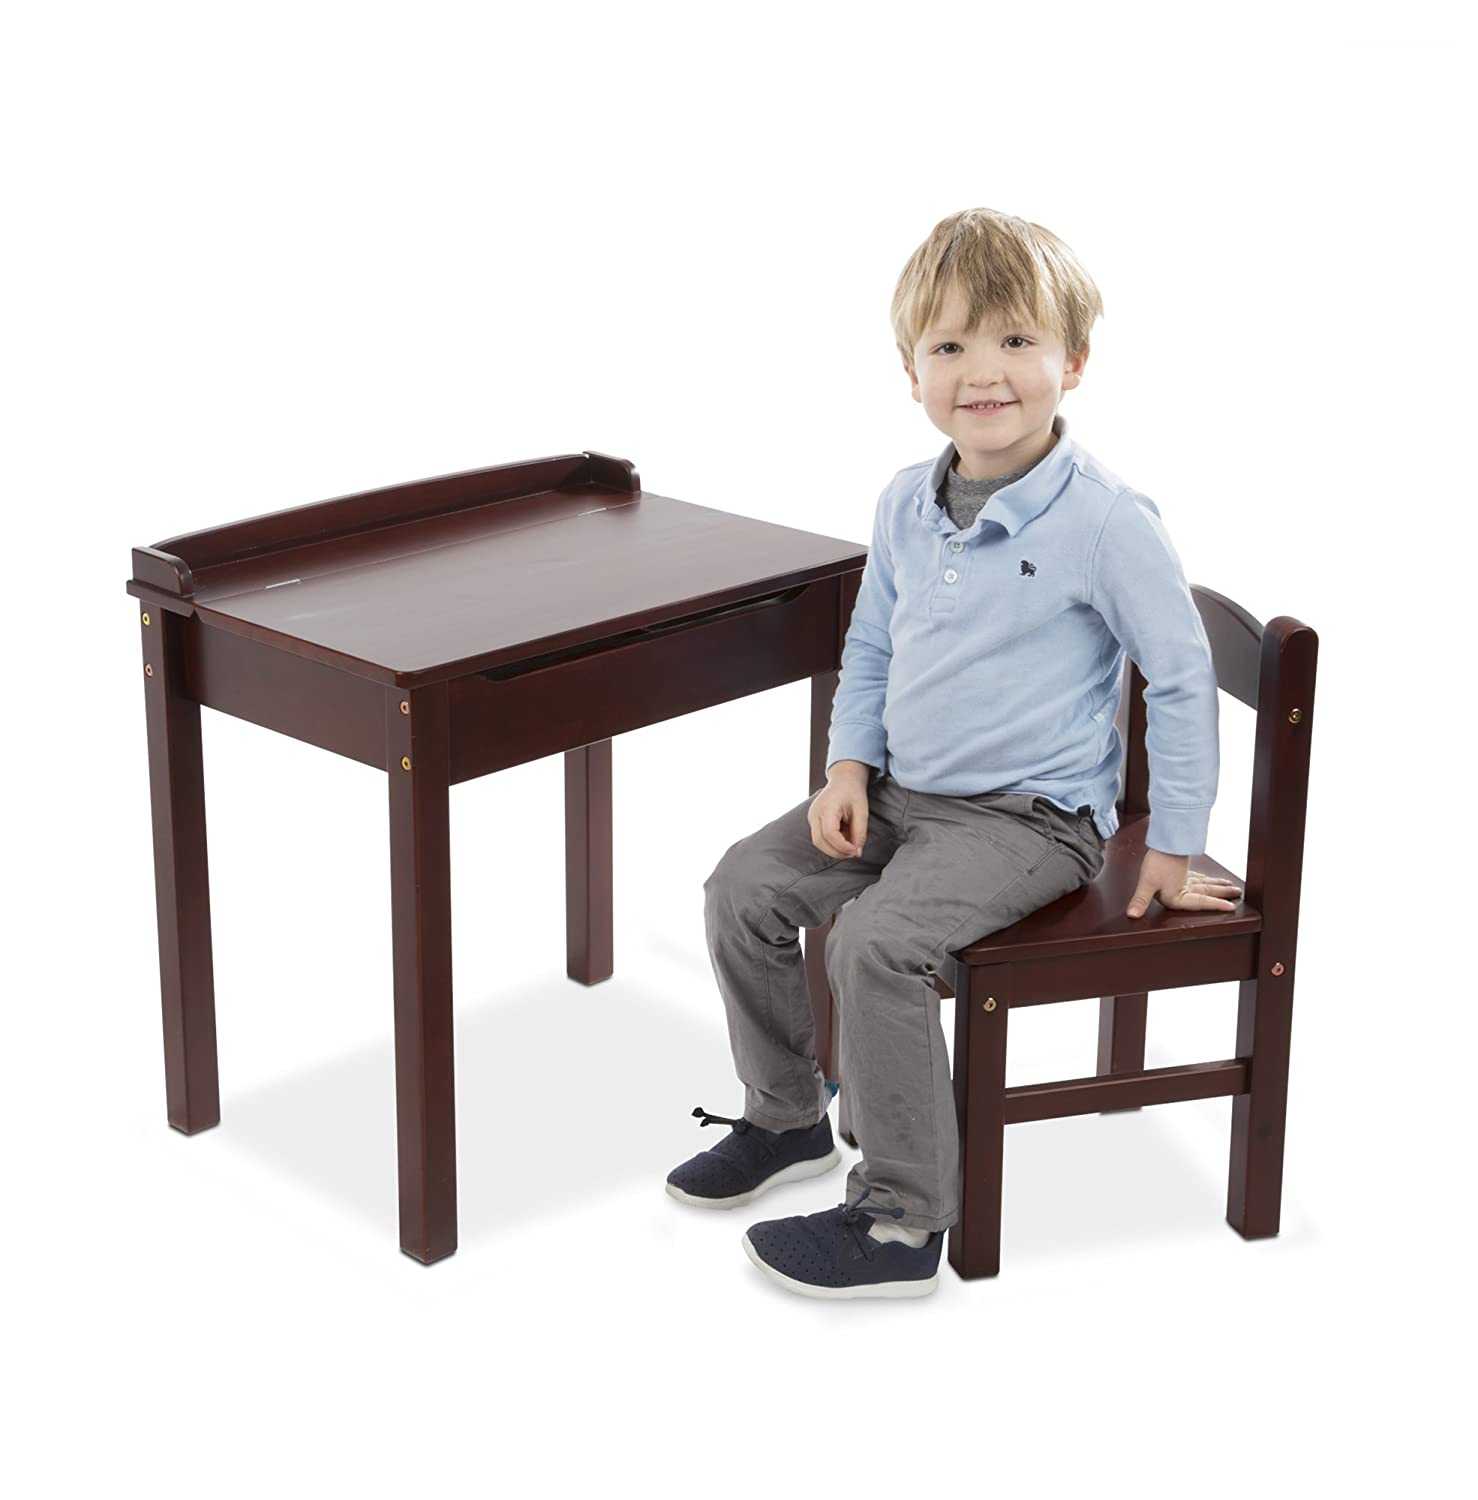 Melissa & Doug Desk & Chair - Espresso Children's Furniture 30232